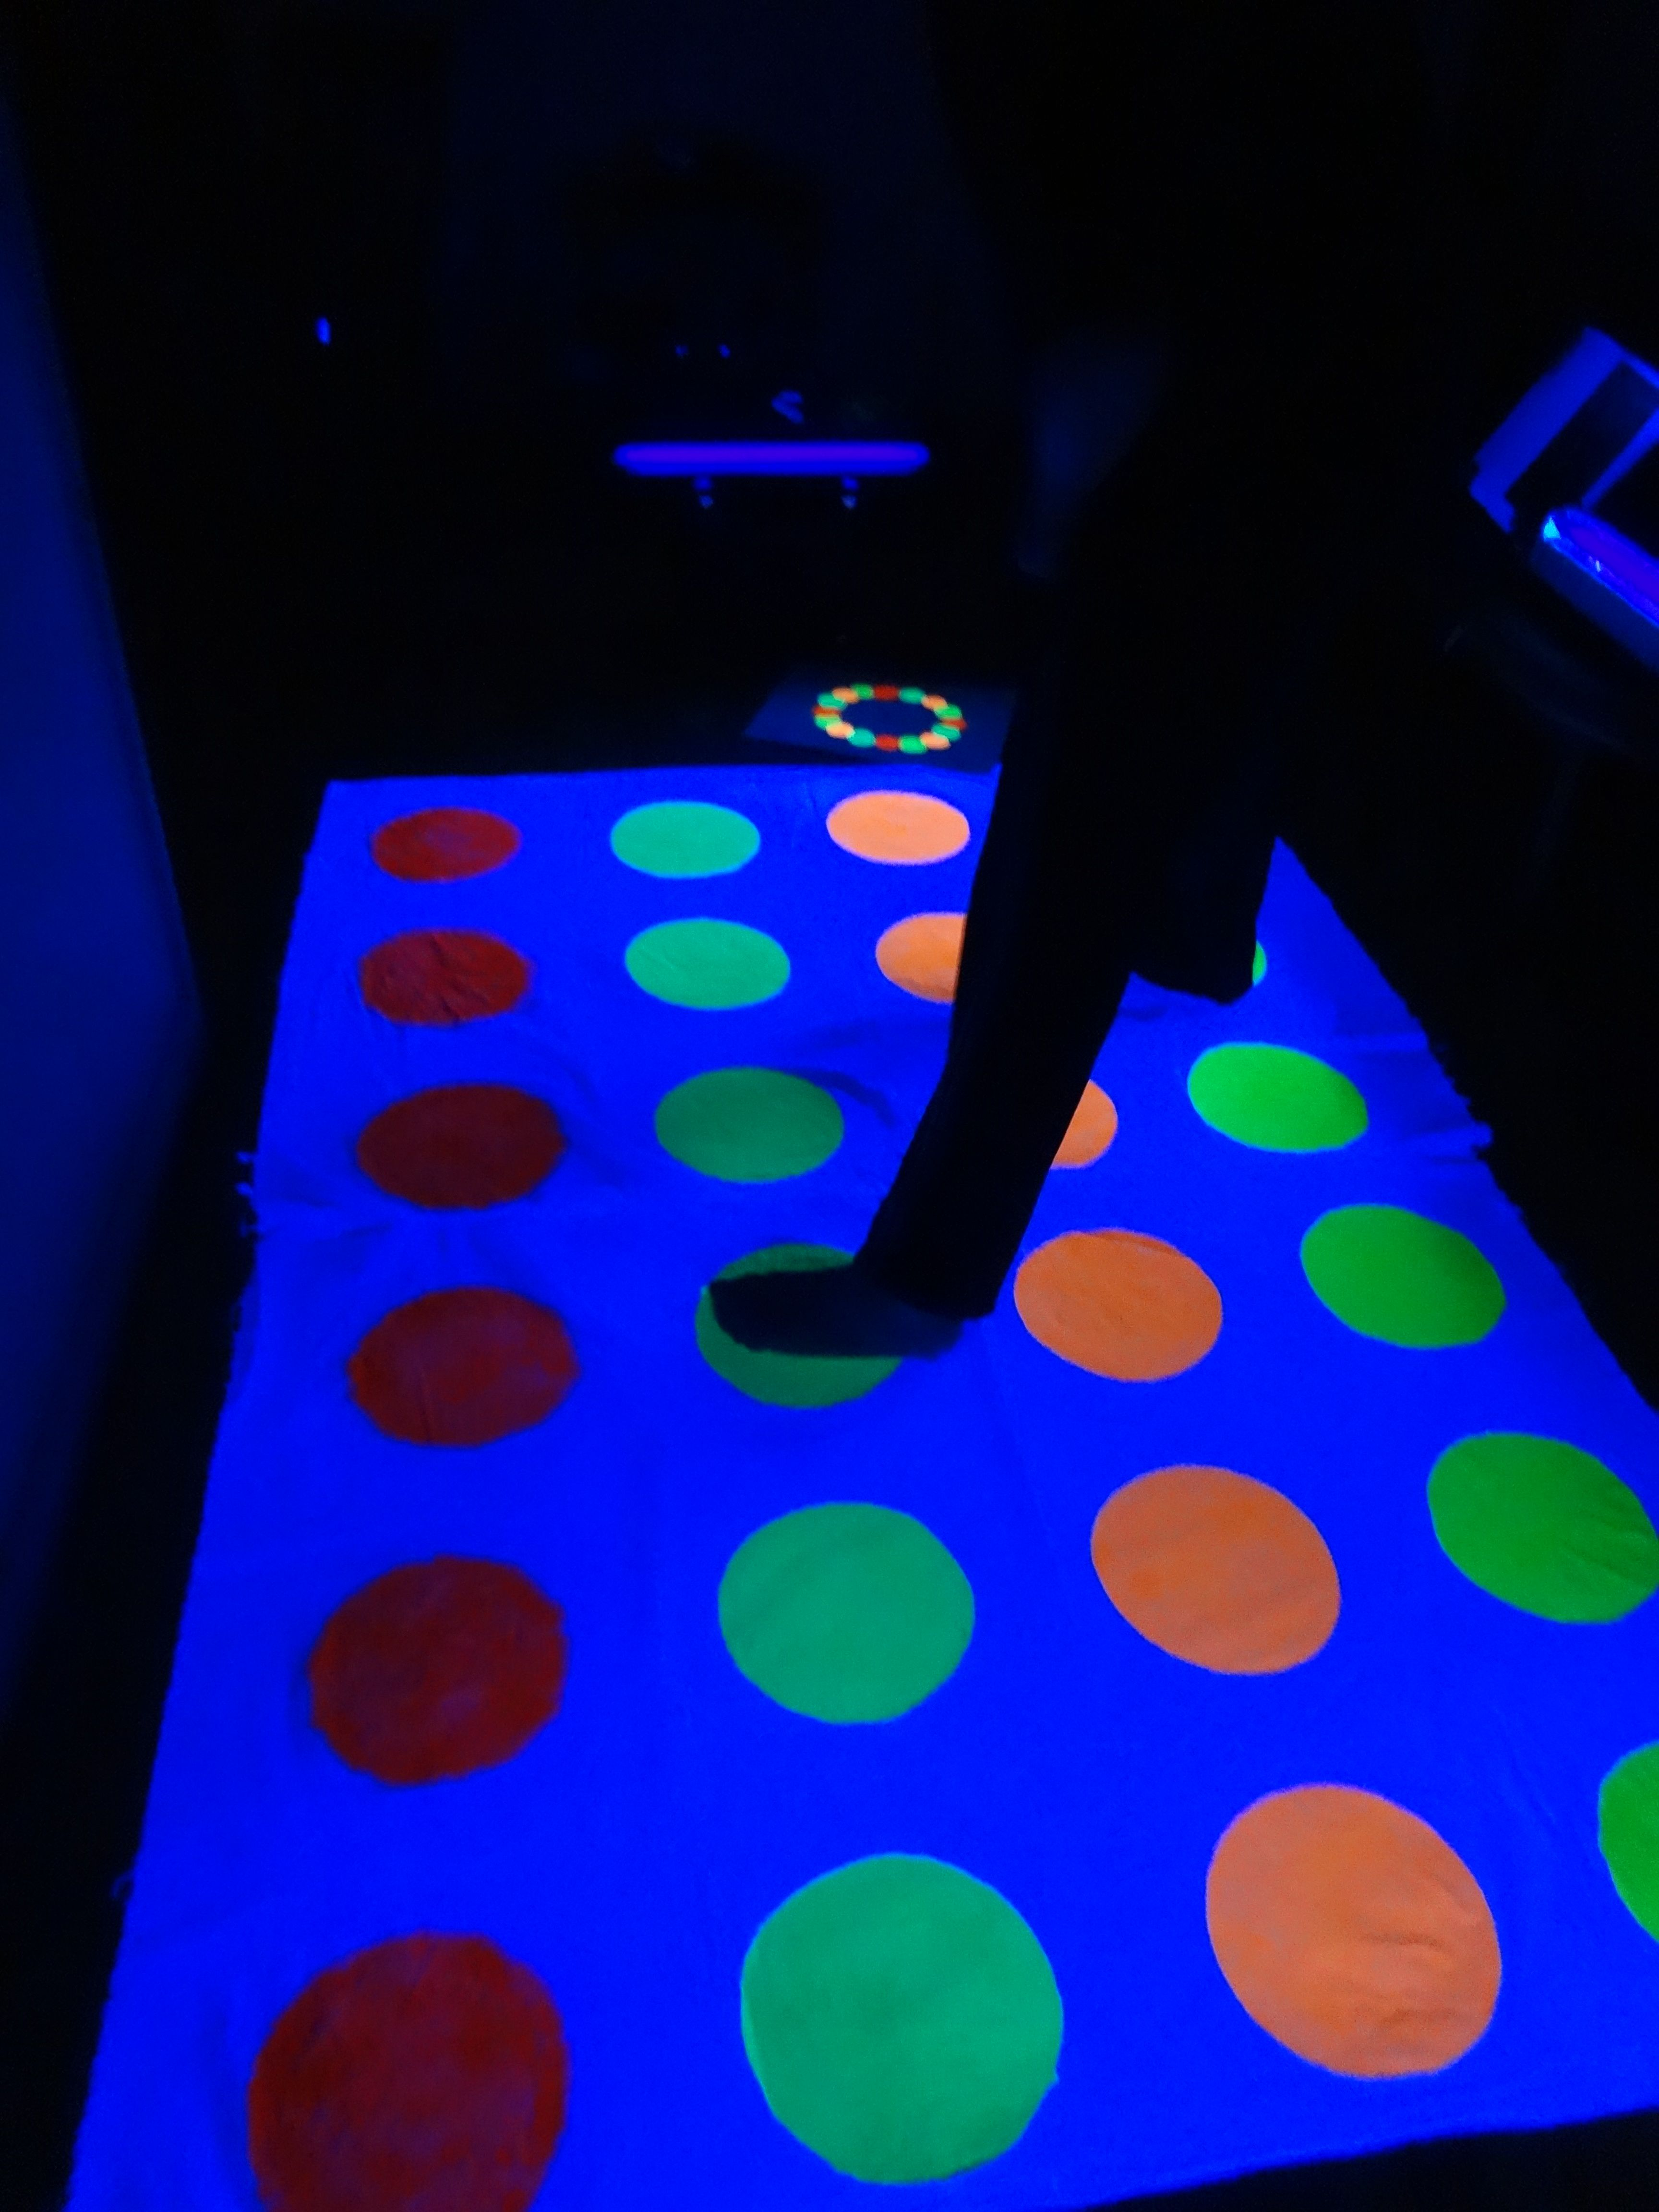 Make your own glow in the dark twister game dark and for 13th floor glow stick